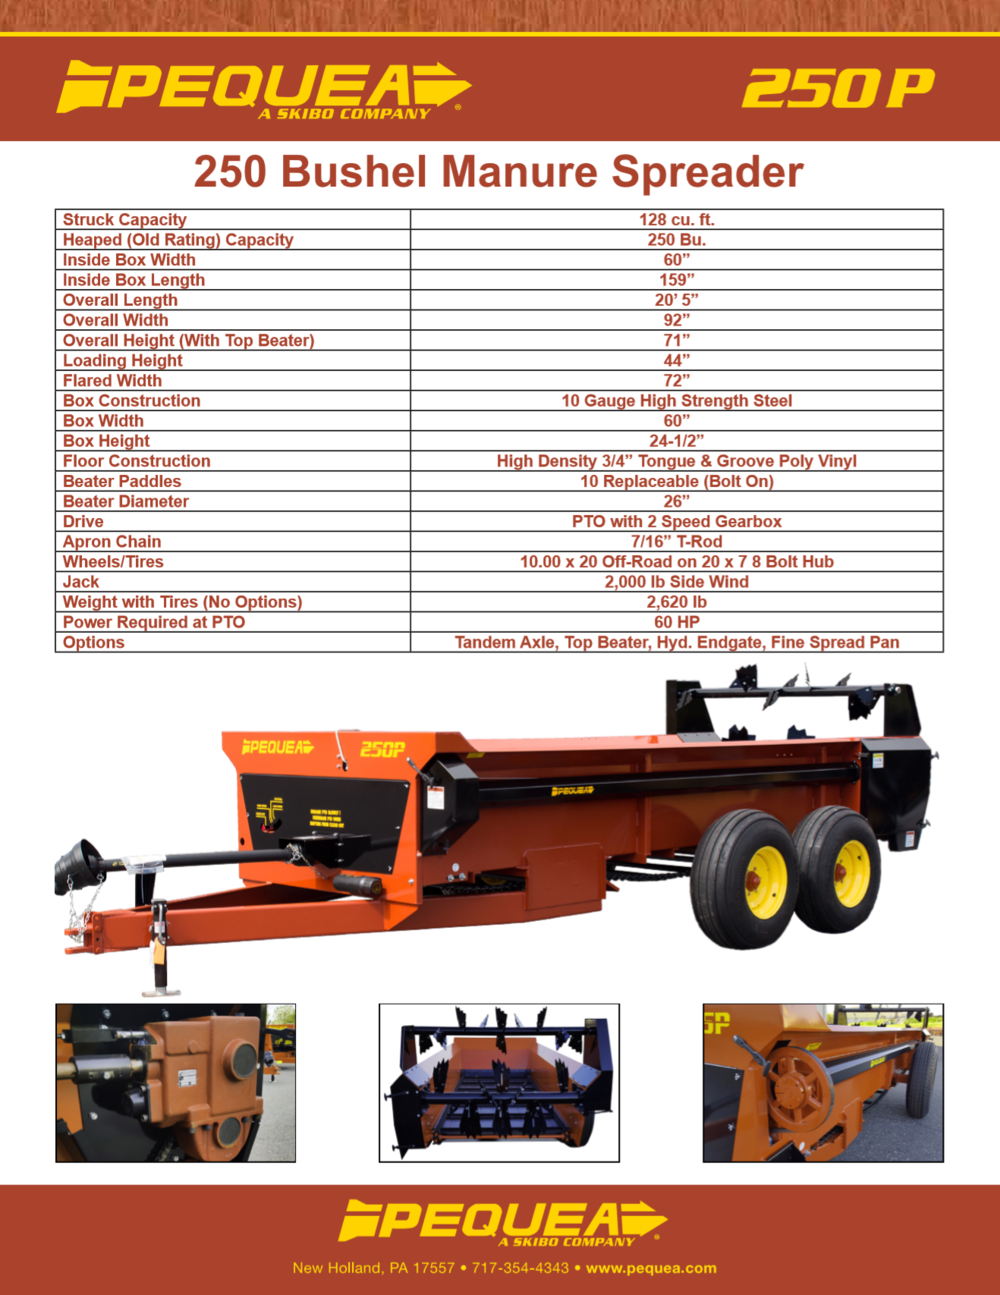 250P Manure Spreader Brochure